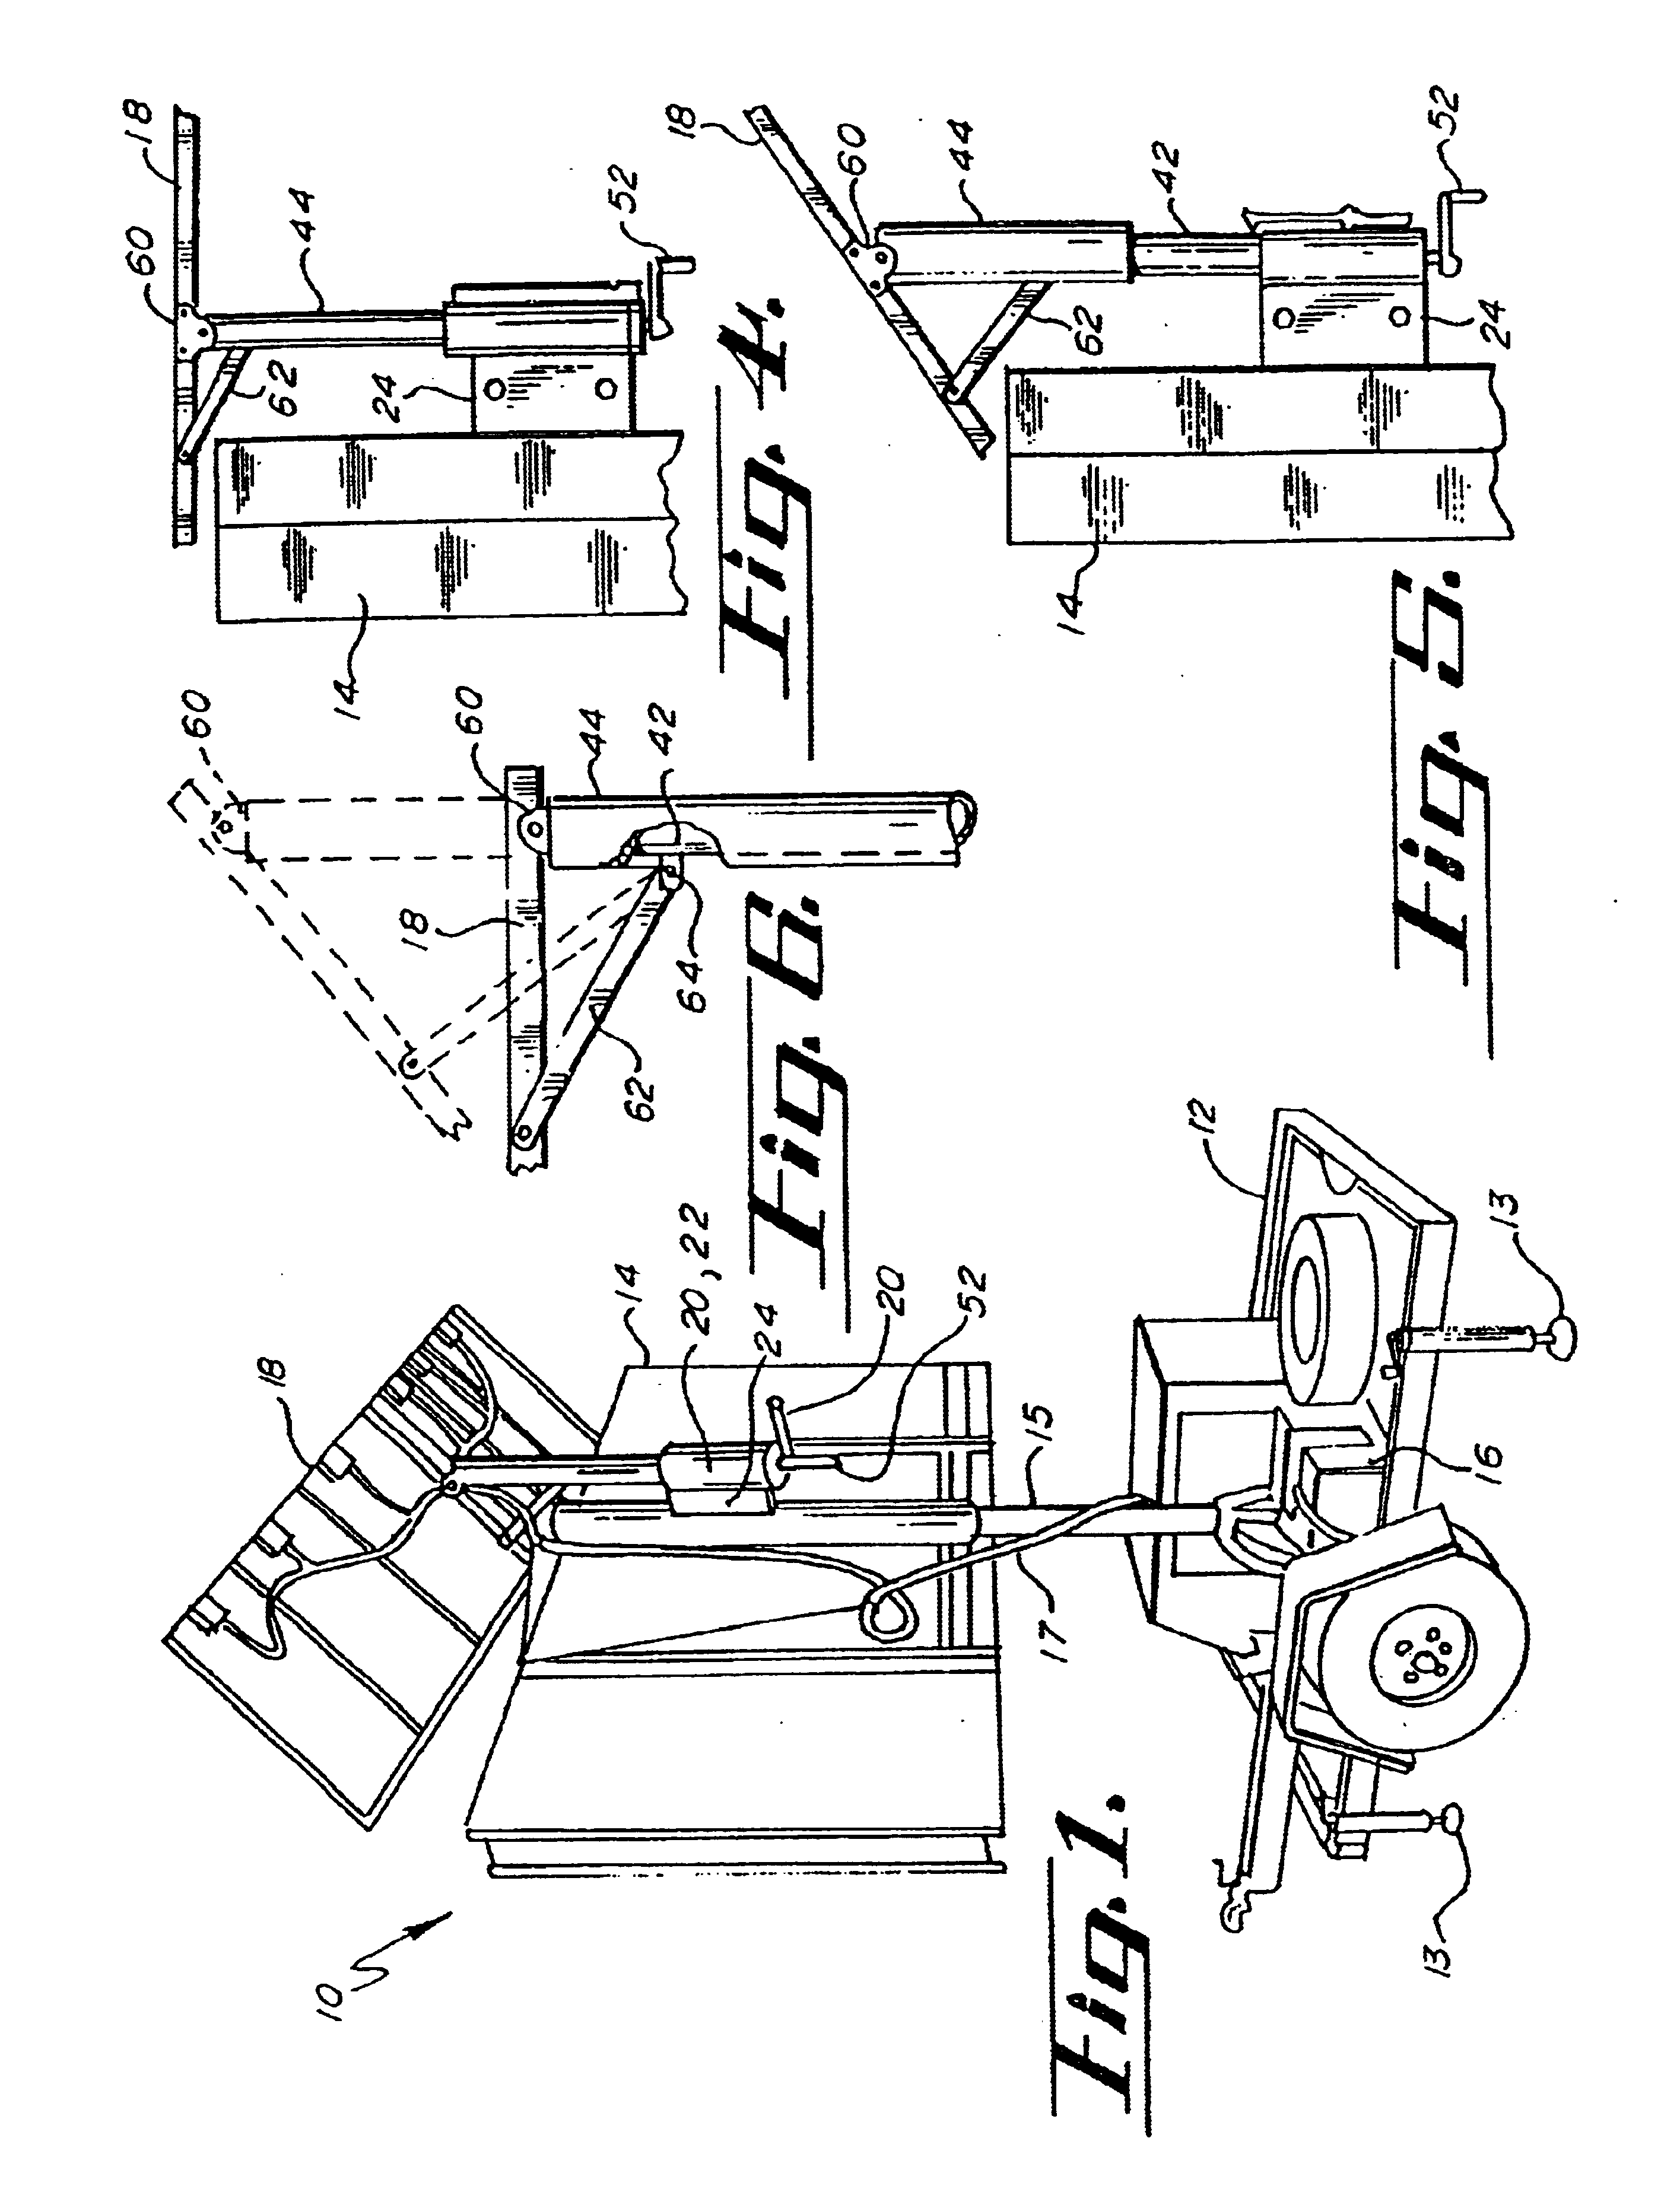 brevet us6750829 outdoor changeable message sign Bad Solar Highways patent drawing